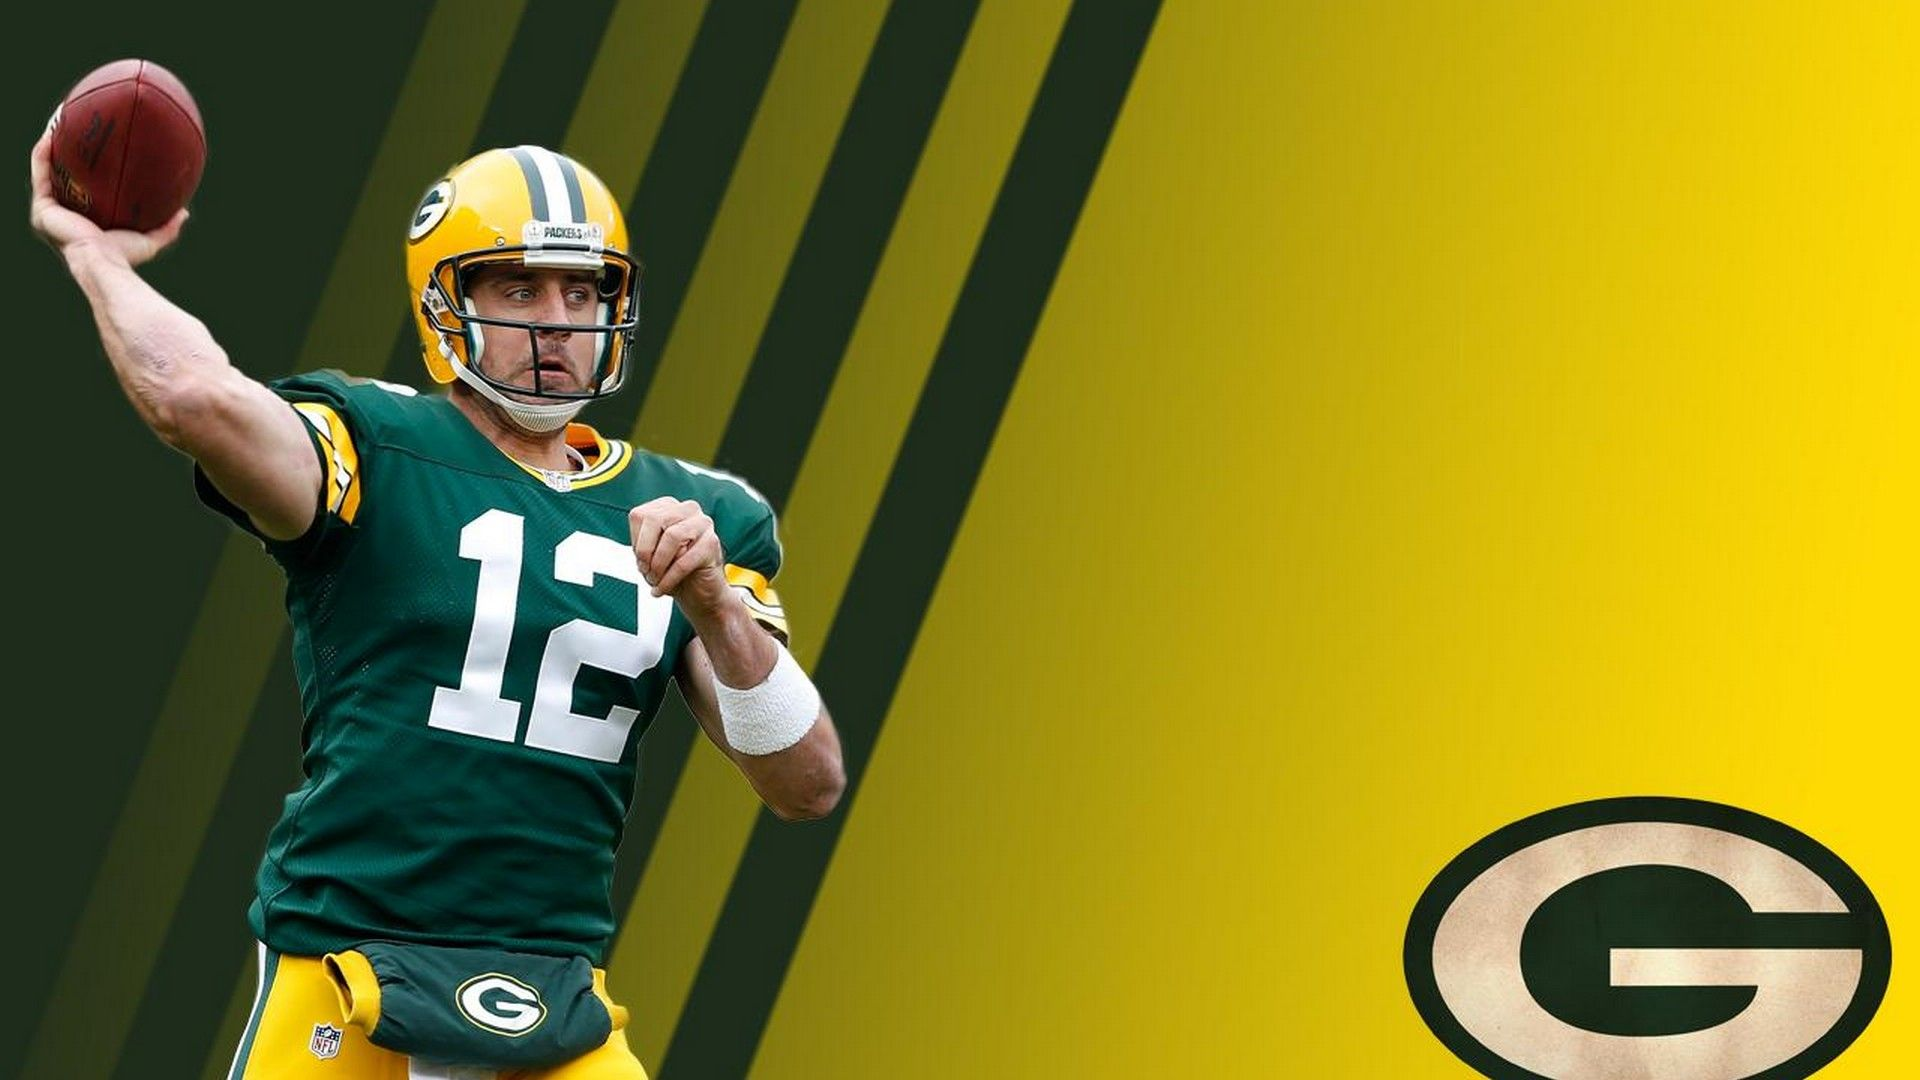 Hd Backgrounds Aaron Rodgers Football Wallpaper Football Nfl